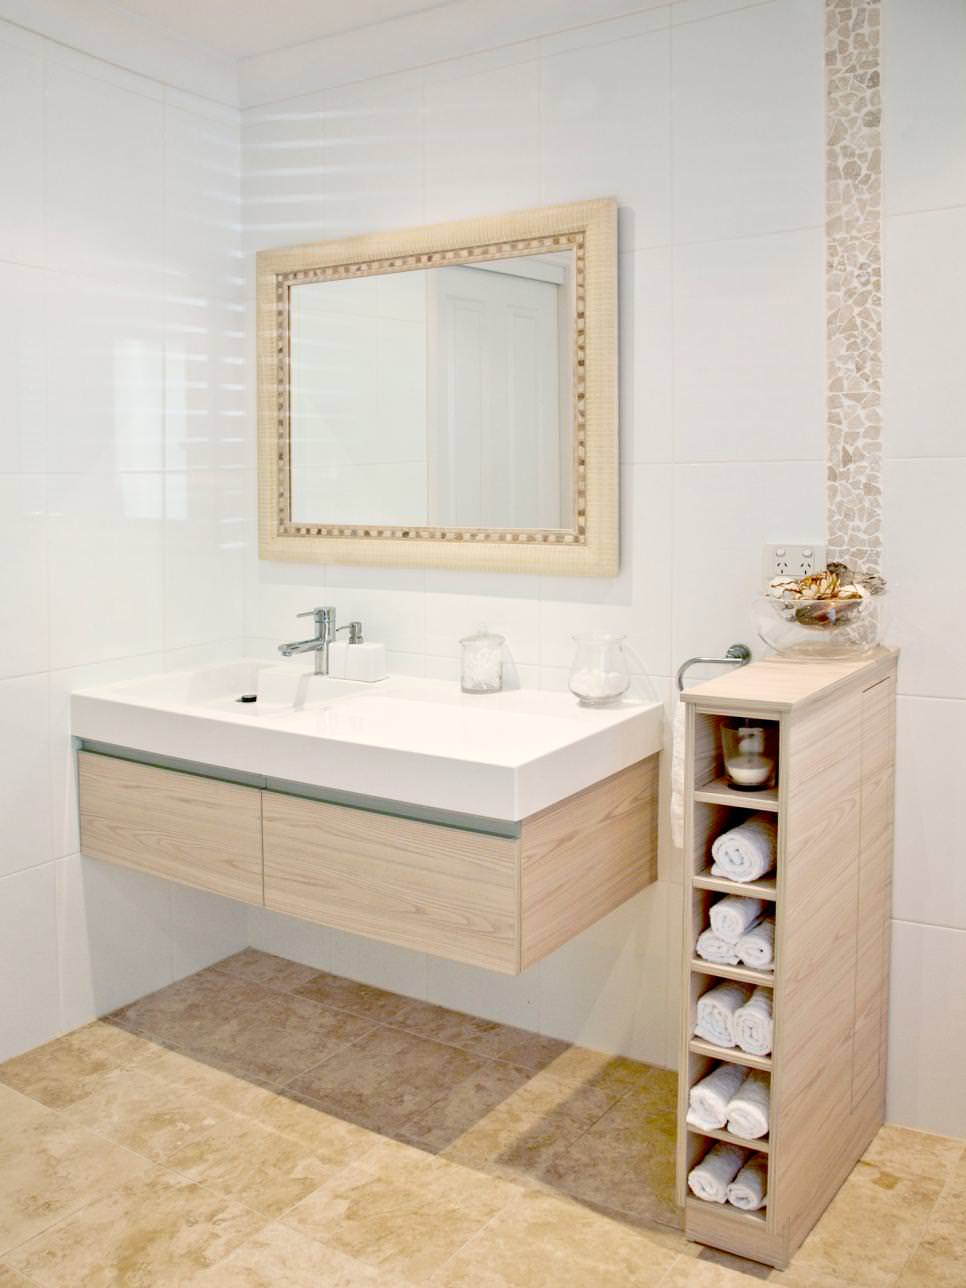 Contemporary Master Bath With Multipurpose Shelving and splash